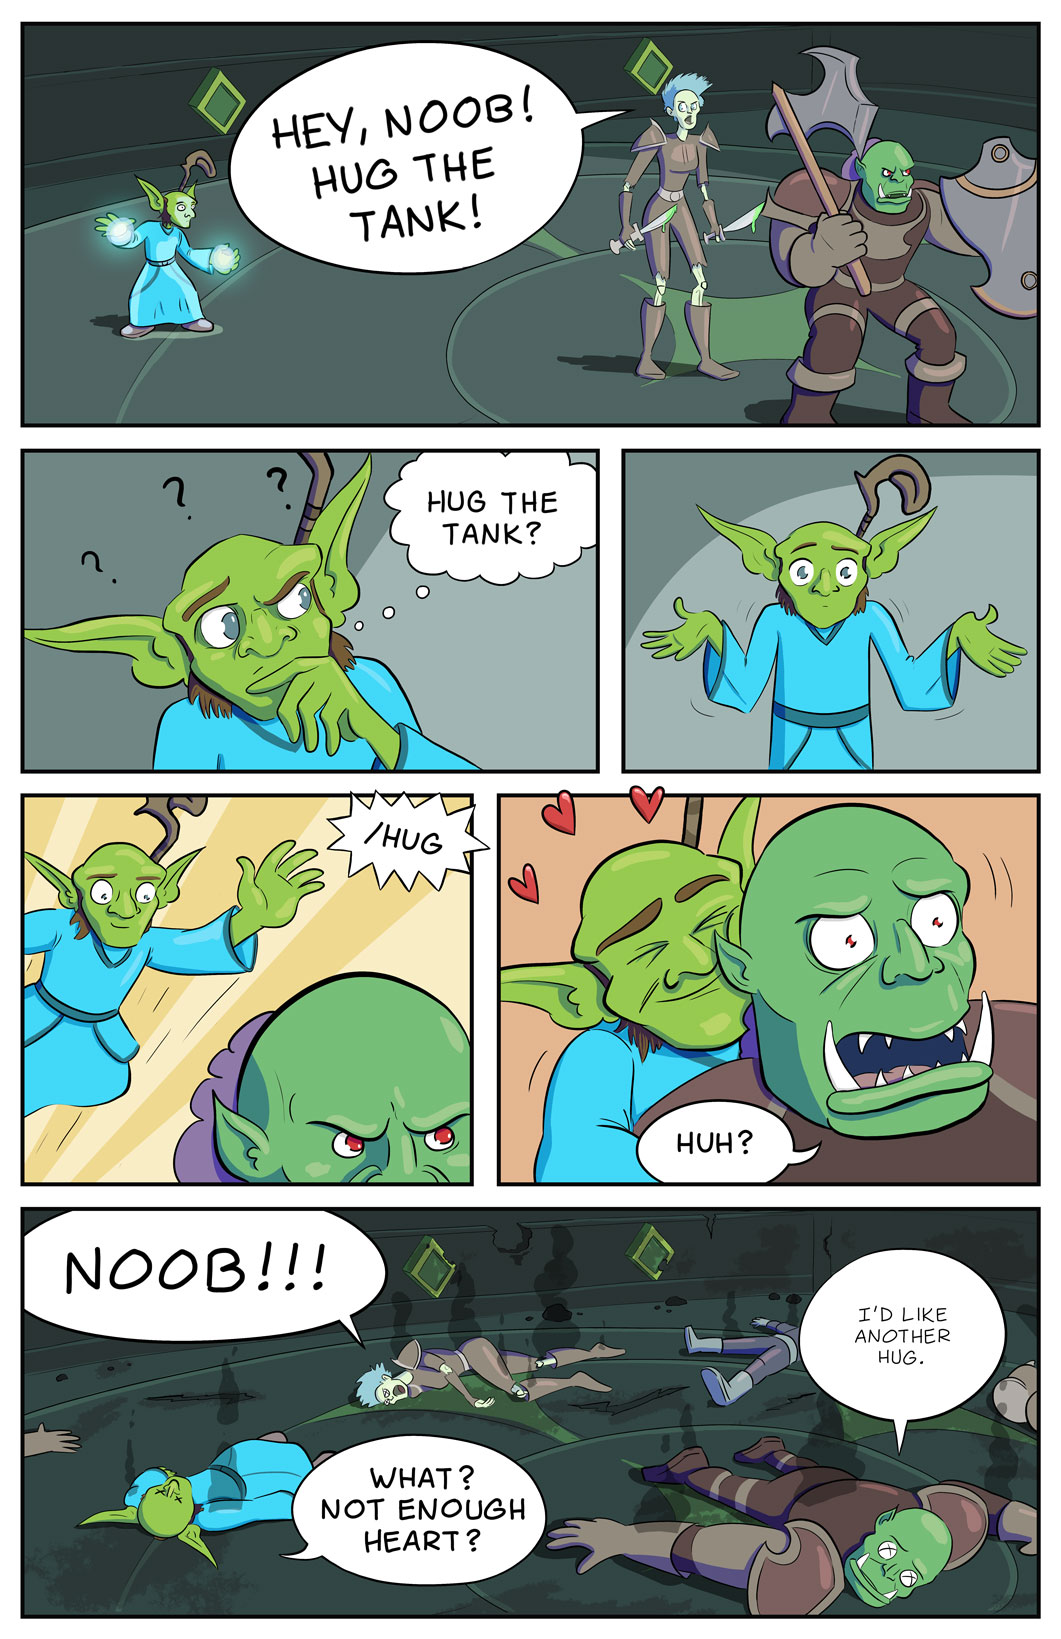 Death by Frog: Your WoW Stories told in Comics